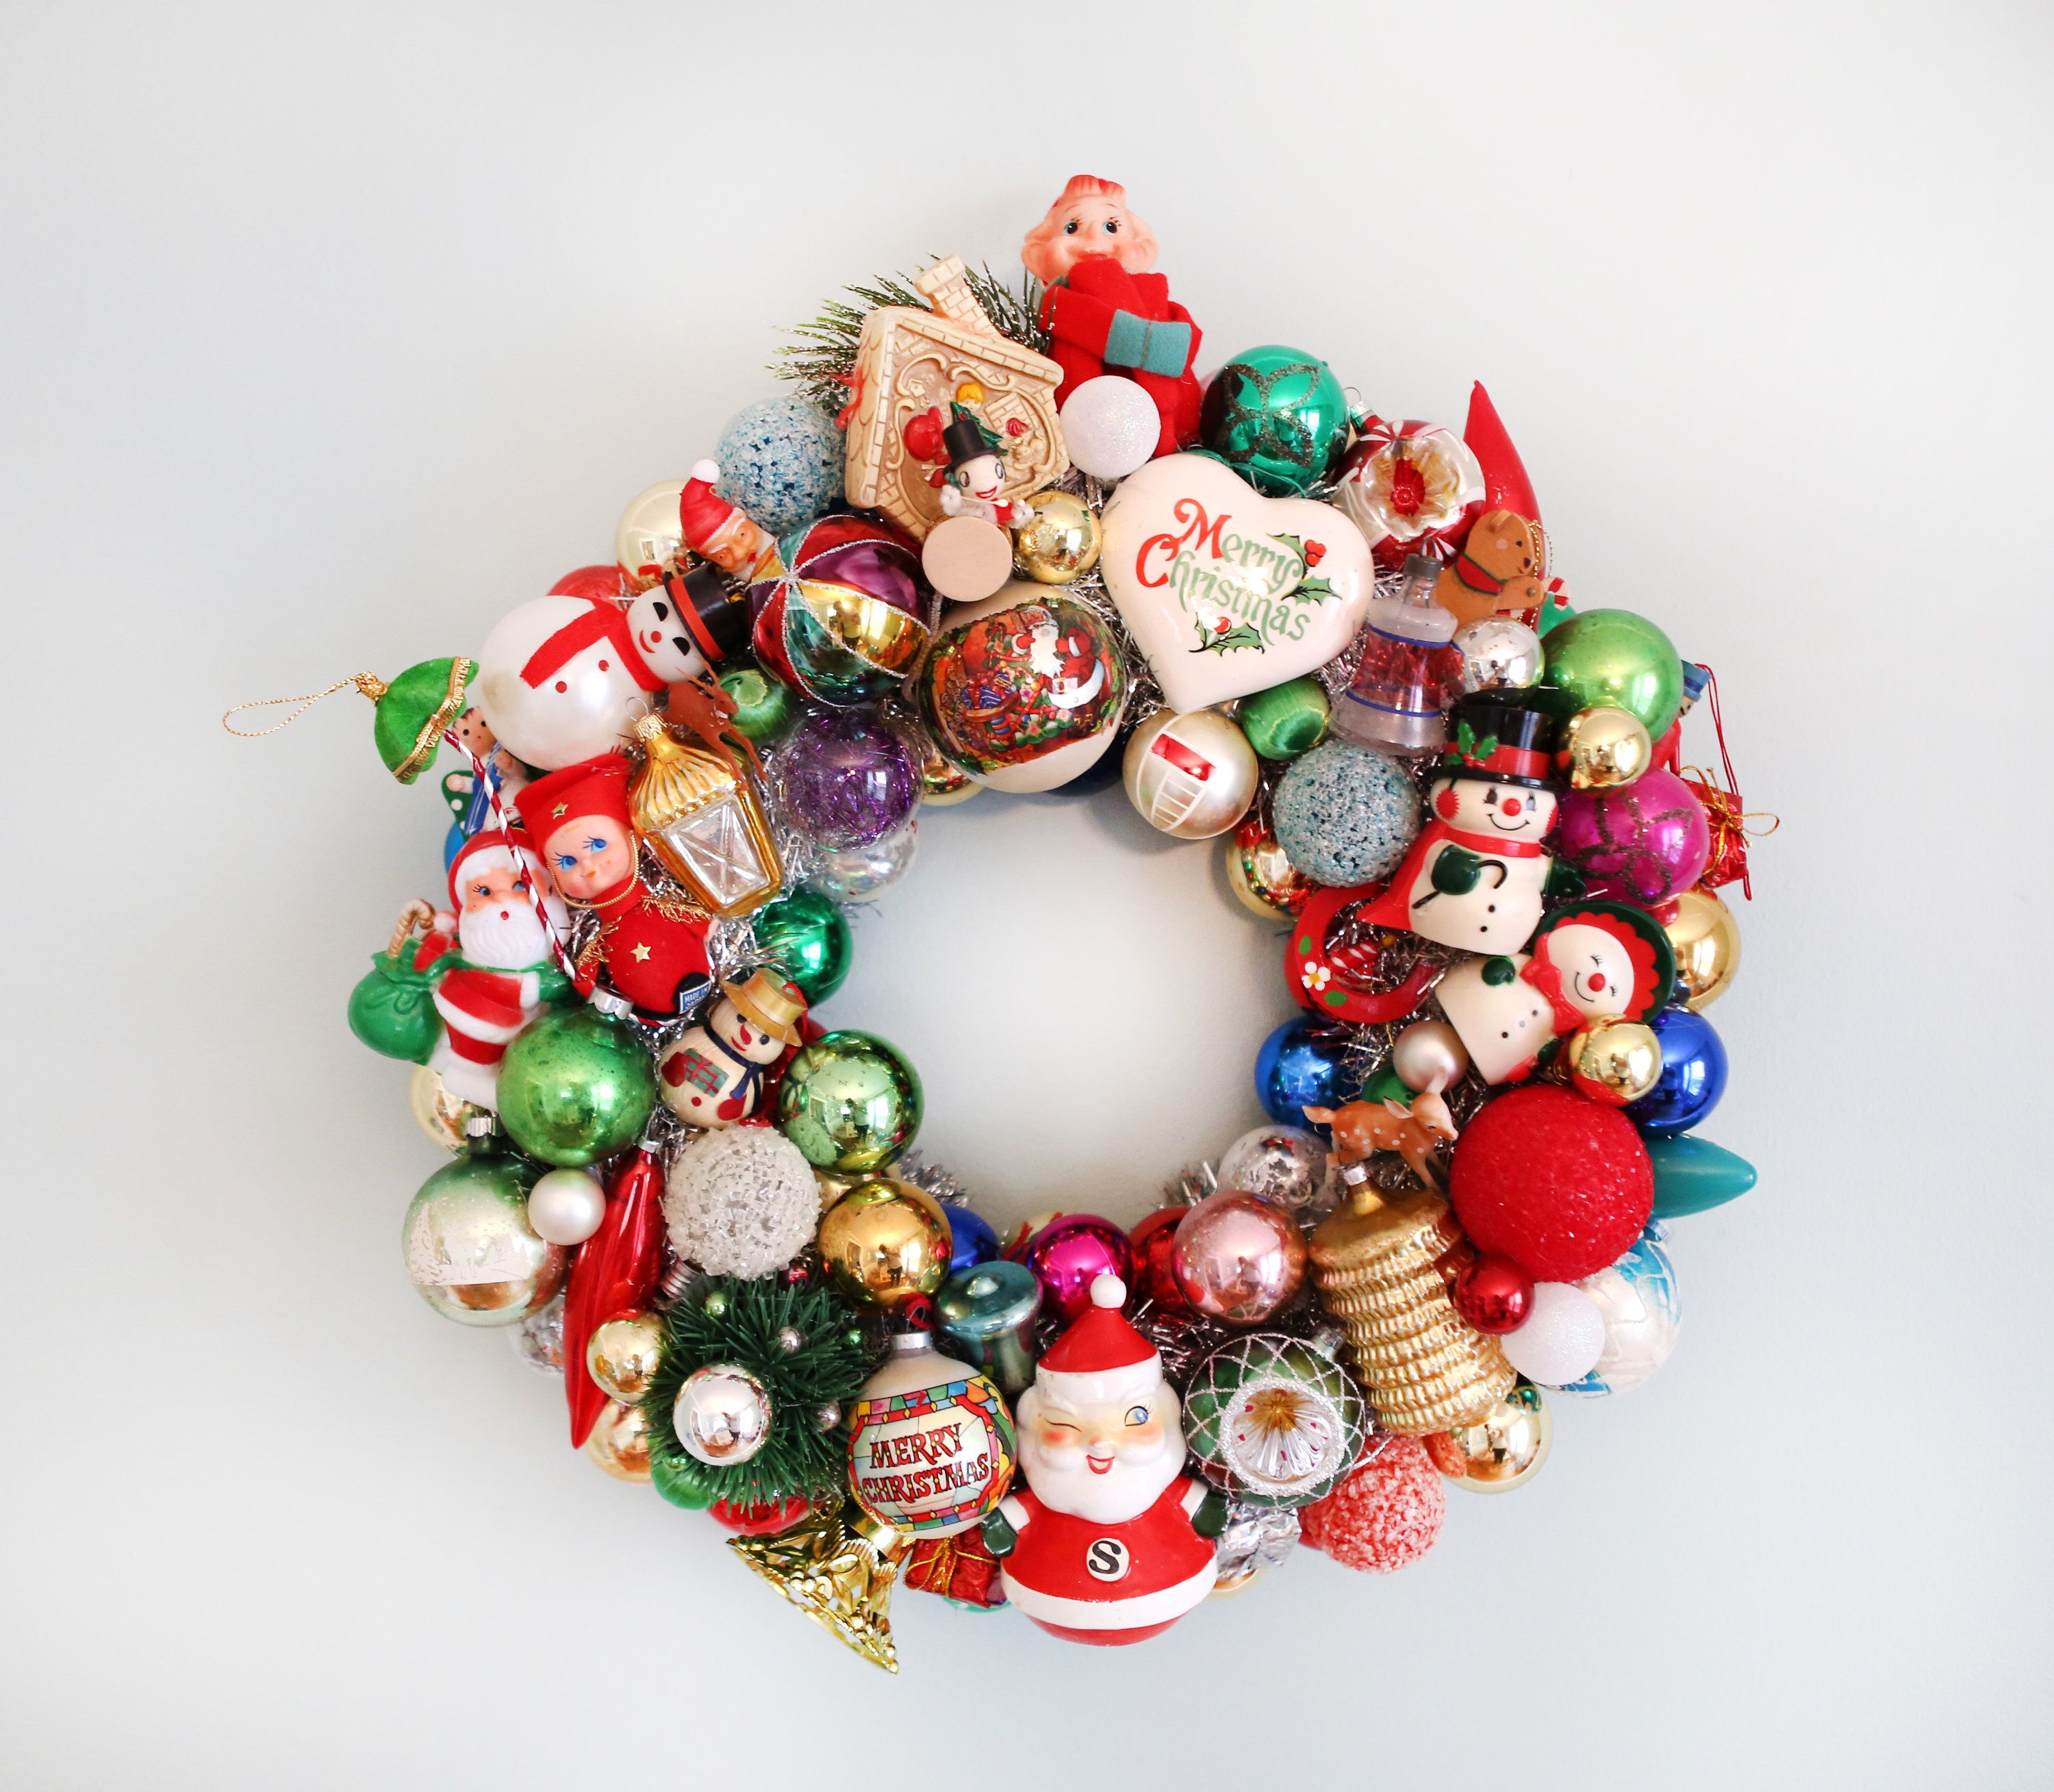 Vintage Christmas Wreath - Vintage Ornament Wreath - Vintage Christmas